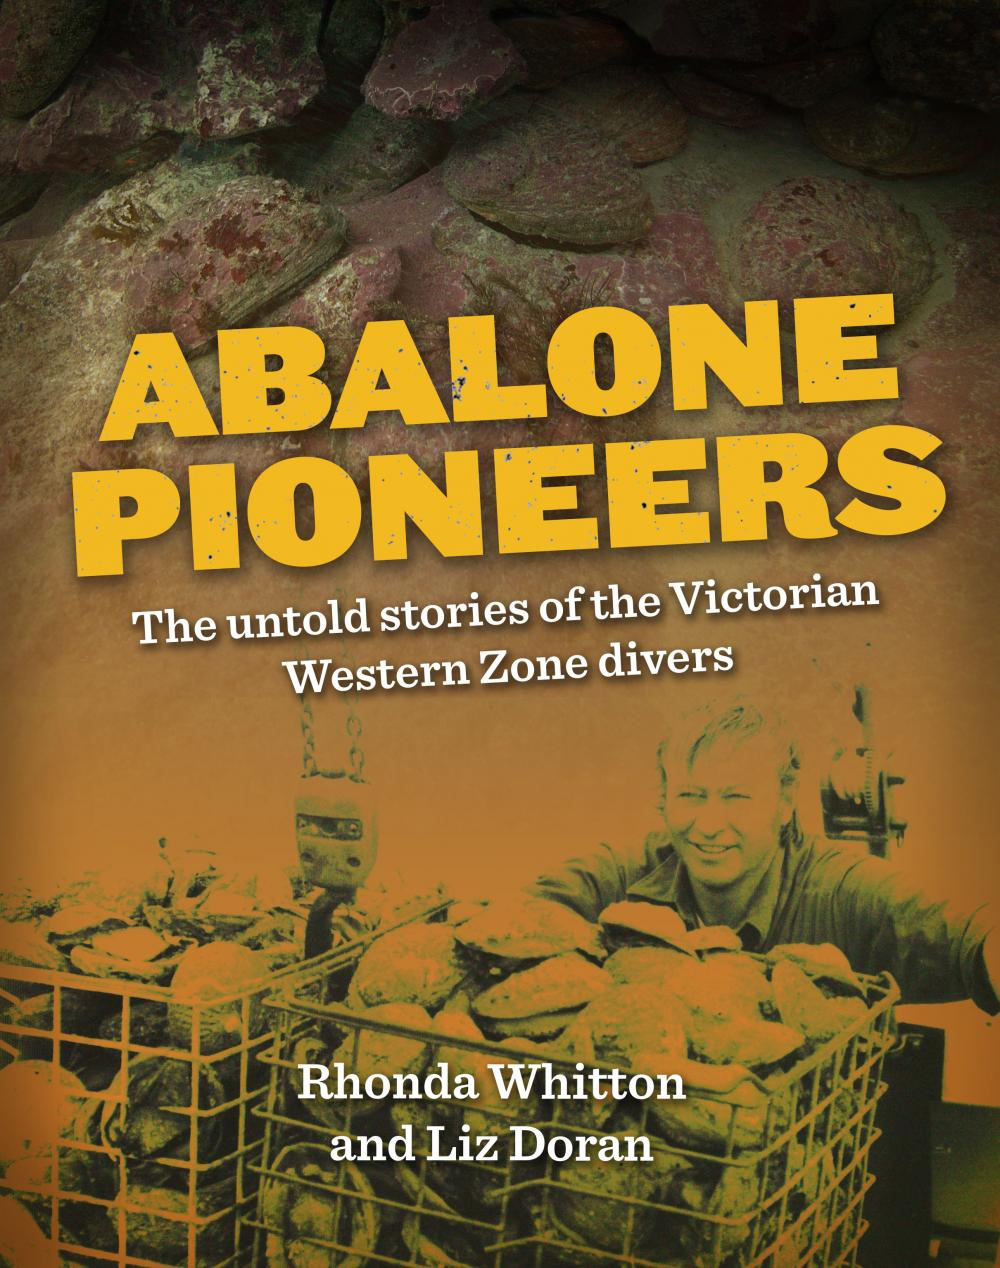 Abalone Pioneers